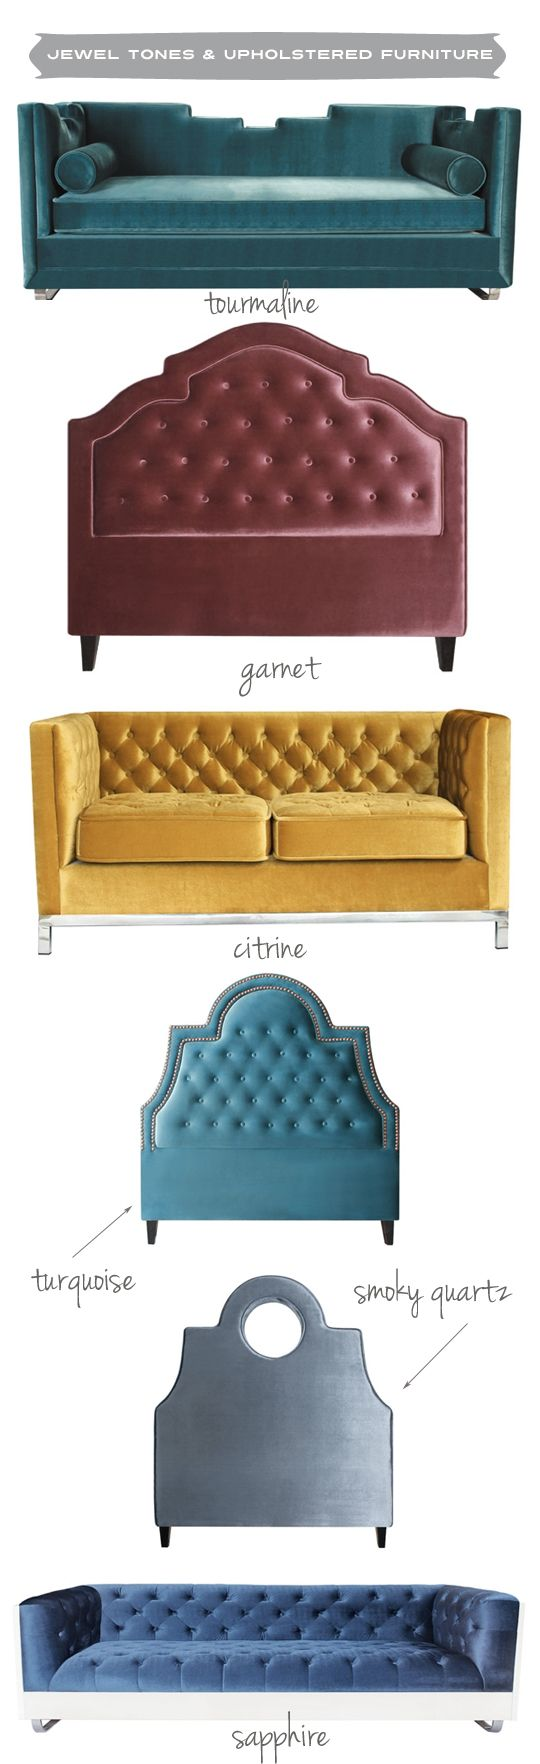 Anna Kohler And My Chic Nest Gemstone Inspired Upholstered Furniture